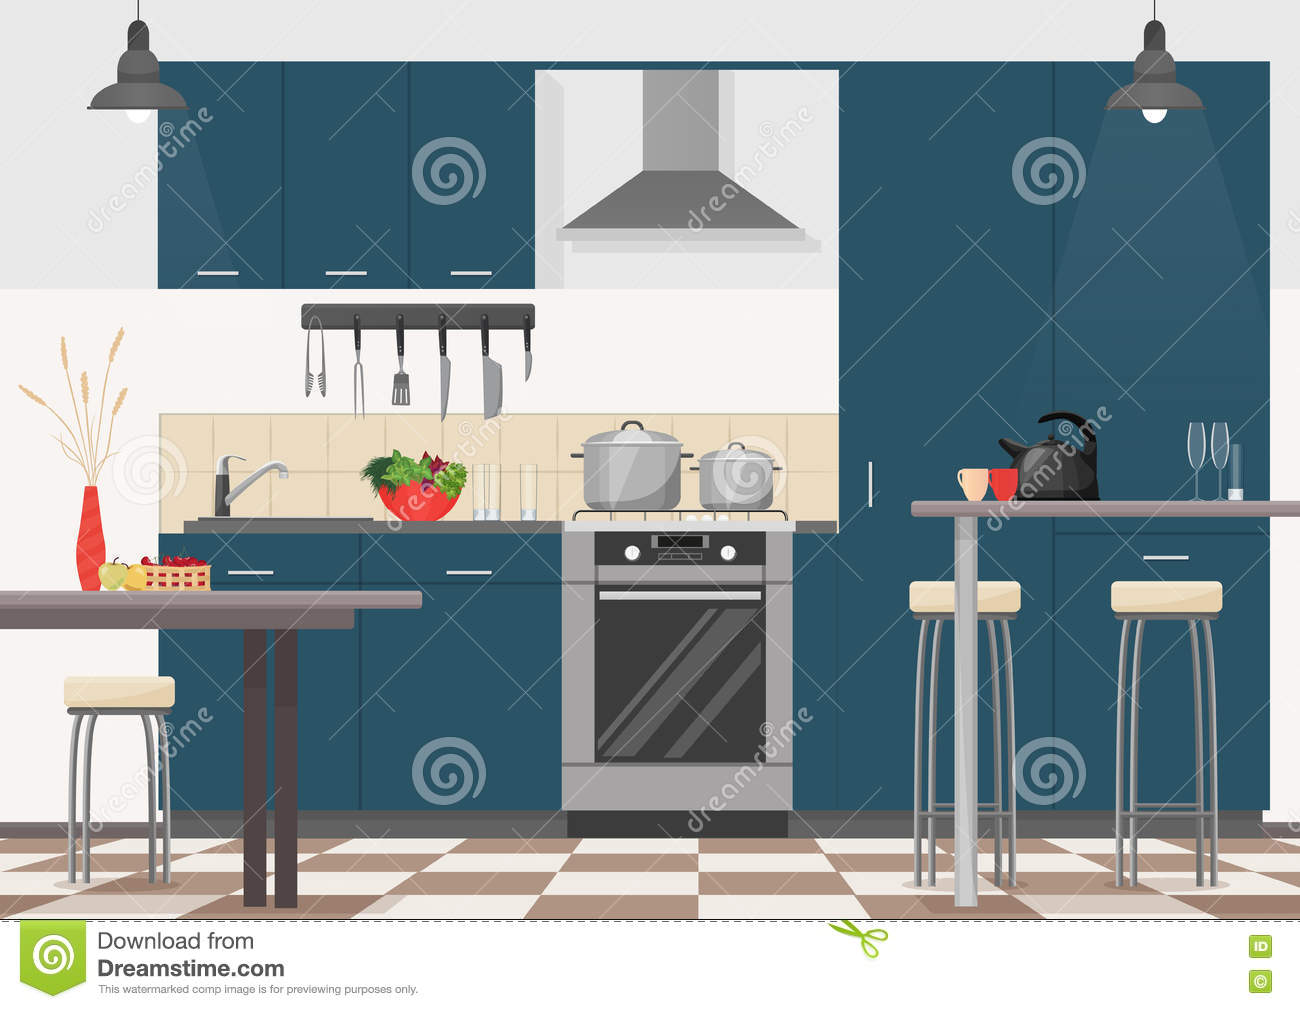 Modern Kitchen Interior With Furniture And Cooking Devices Cartoon Realistic Flat Design Of